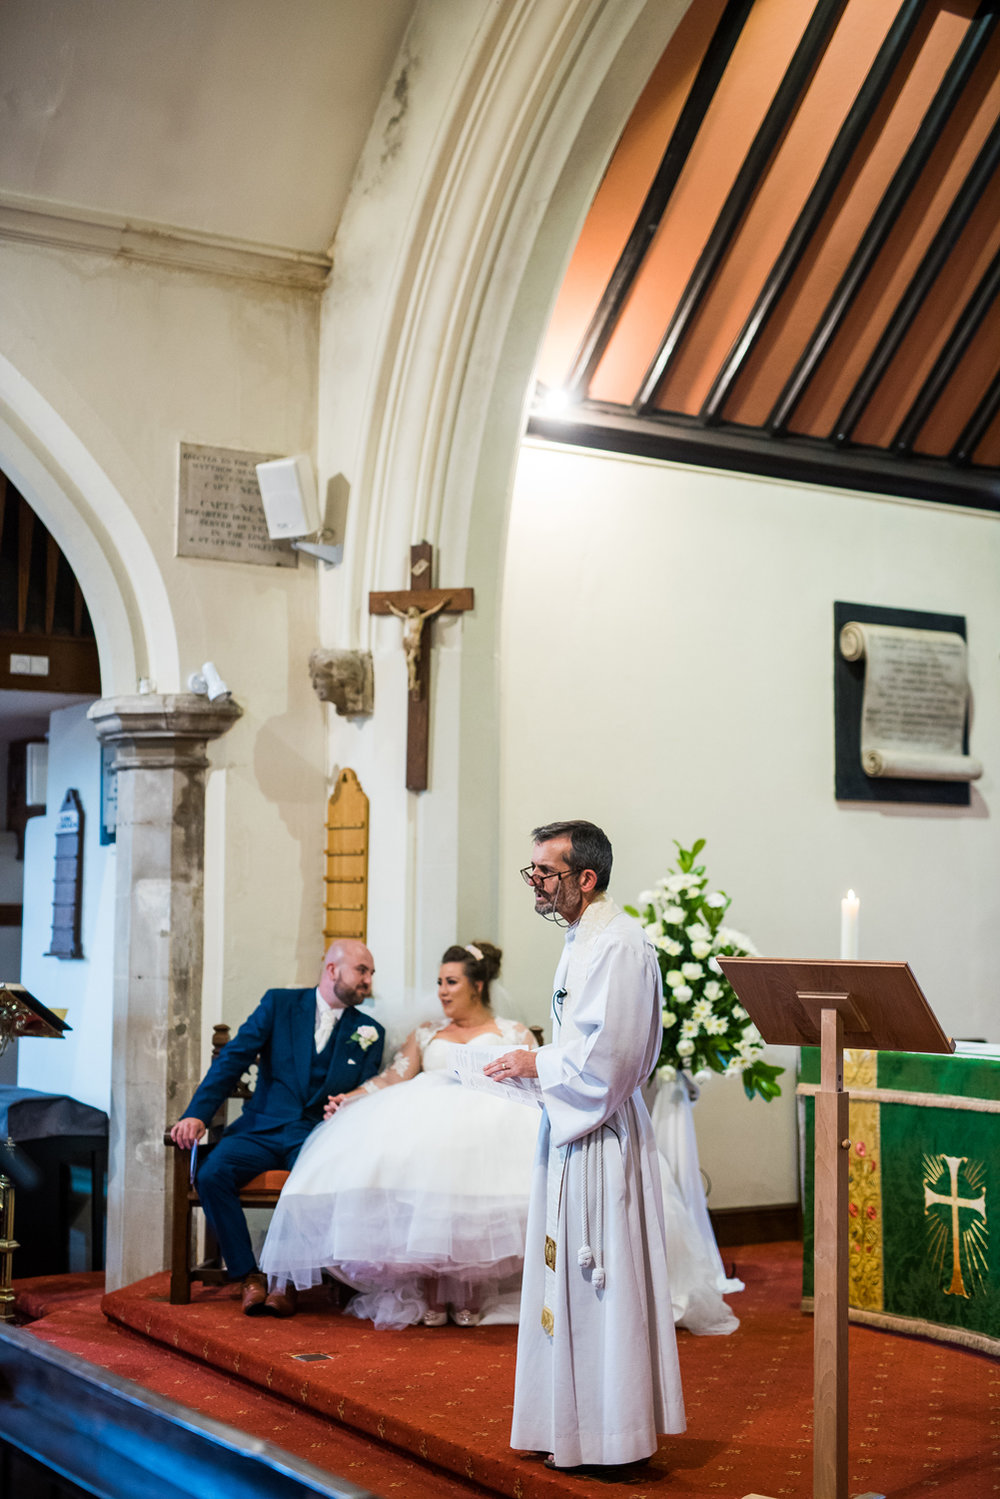 Roise and John wedding photos (141 of 383).jpg